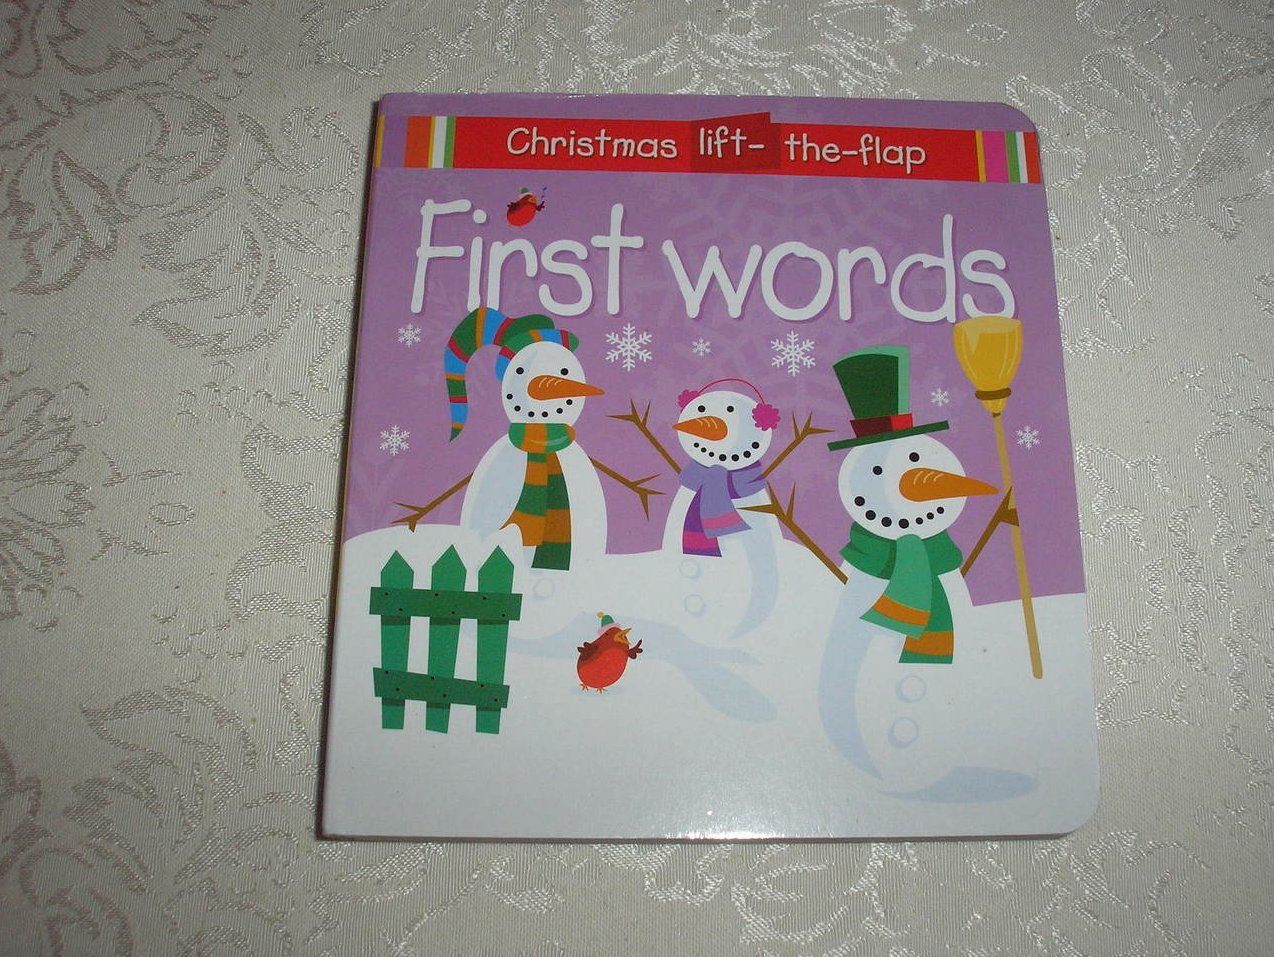 First Words Christmas Lift-the-Flap brand new board book